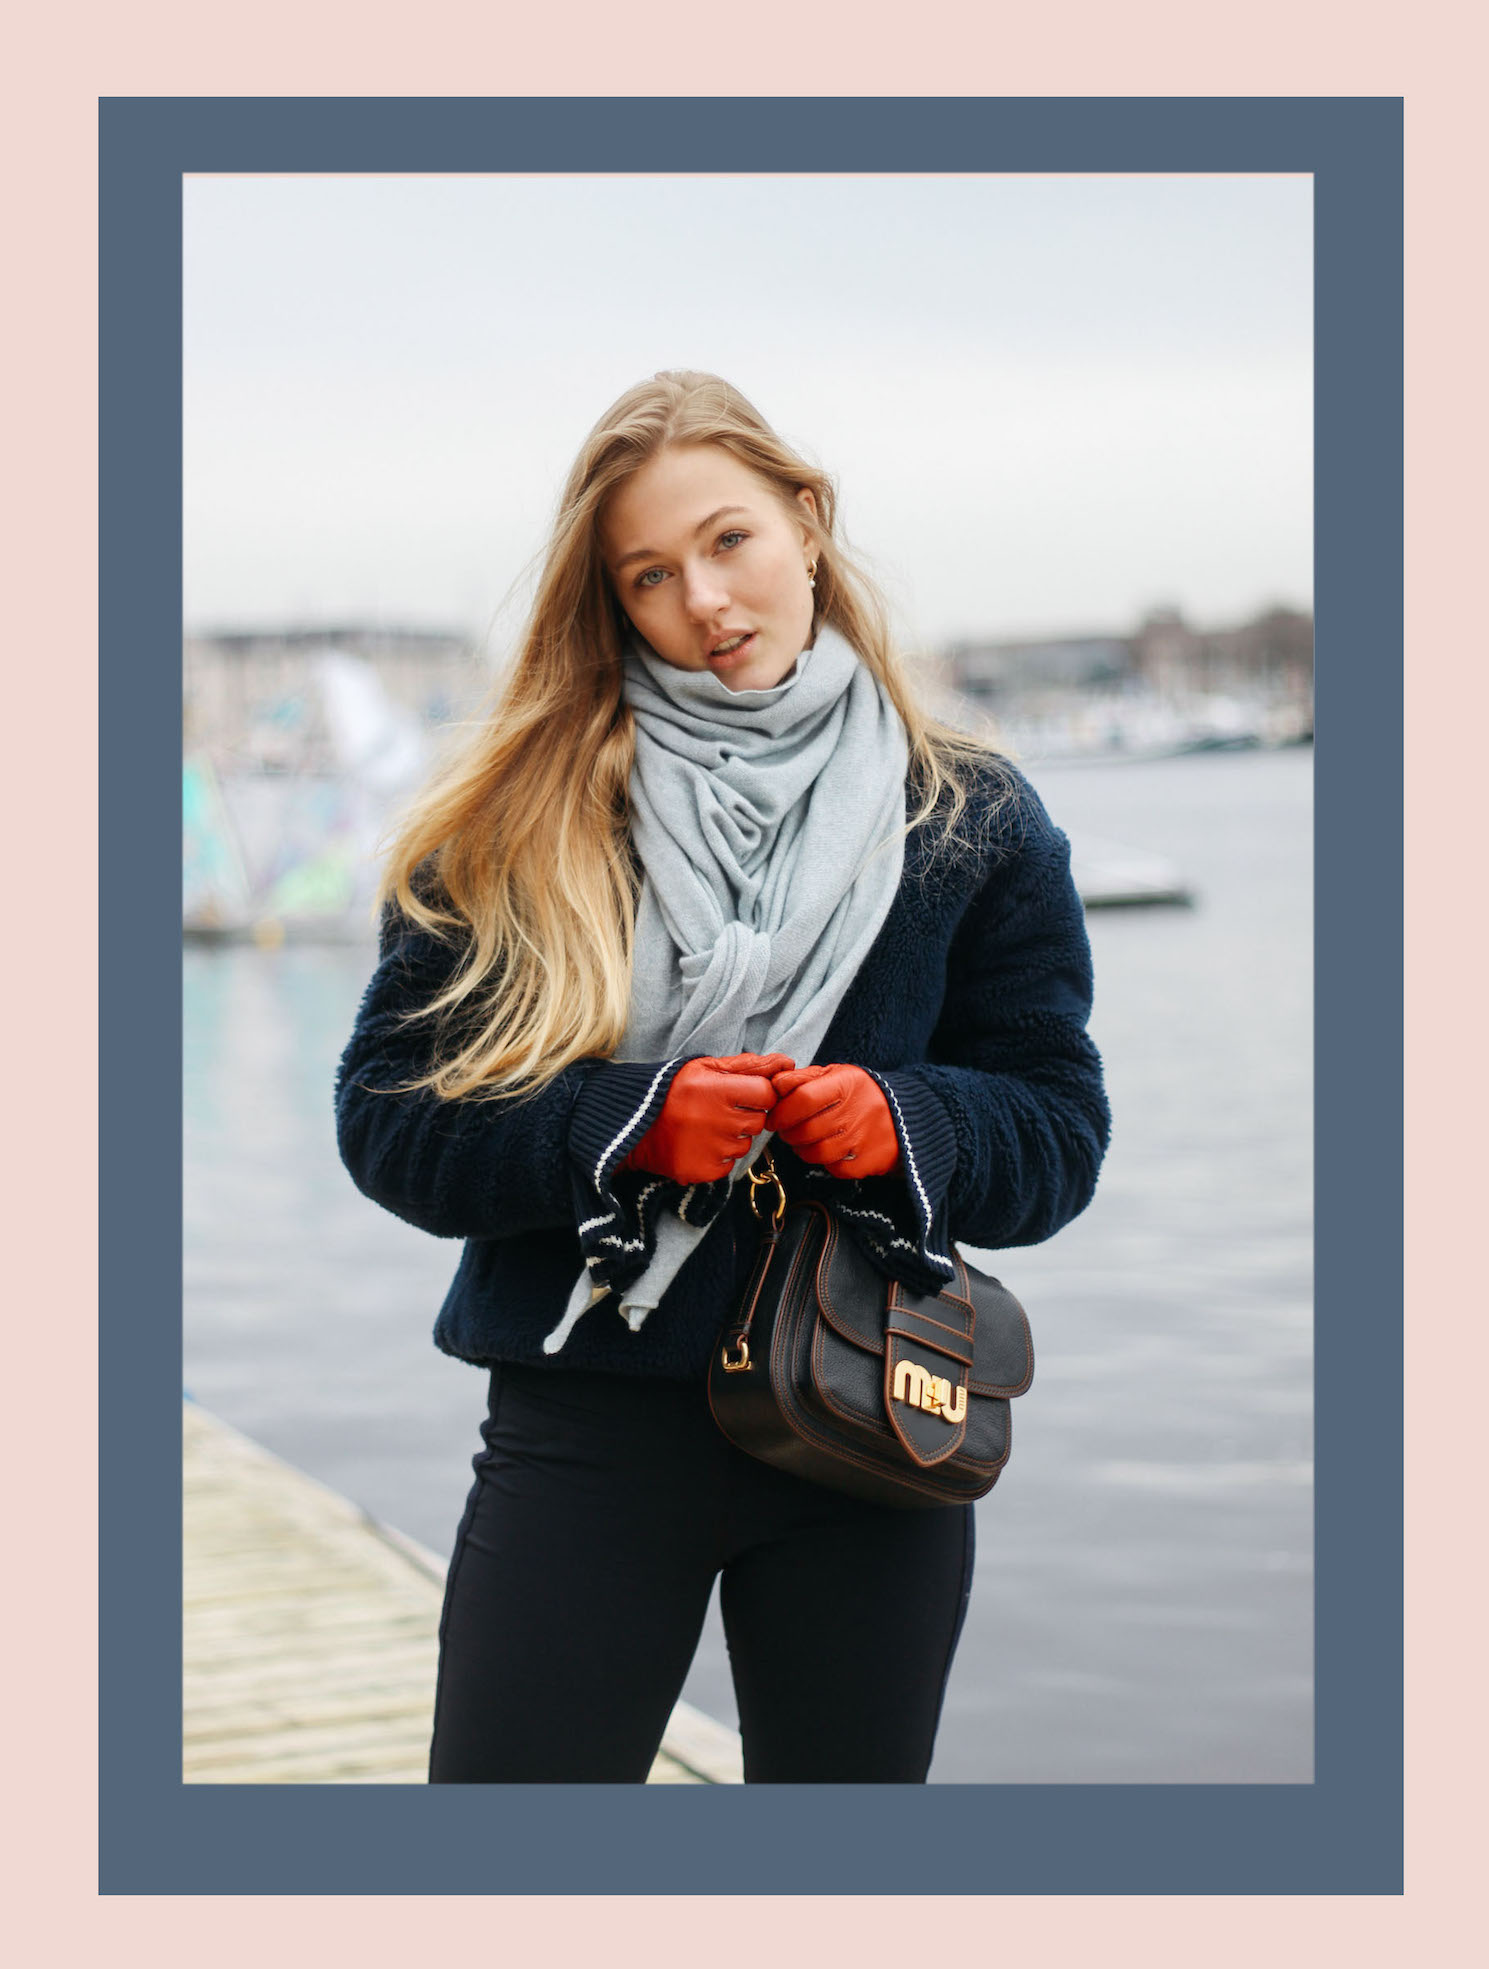 floortjeloves, outfits, instagram outfits, instagram posts, instagram, outfits, outfits of the month, January, January 2018, instagram outfits January 18